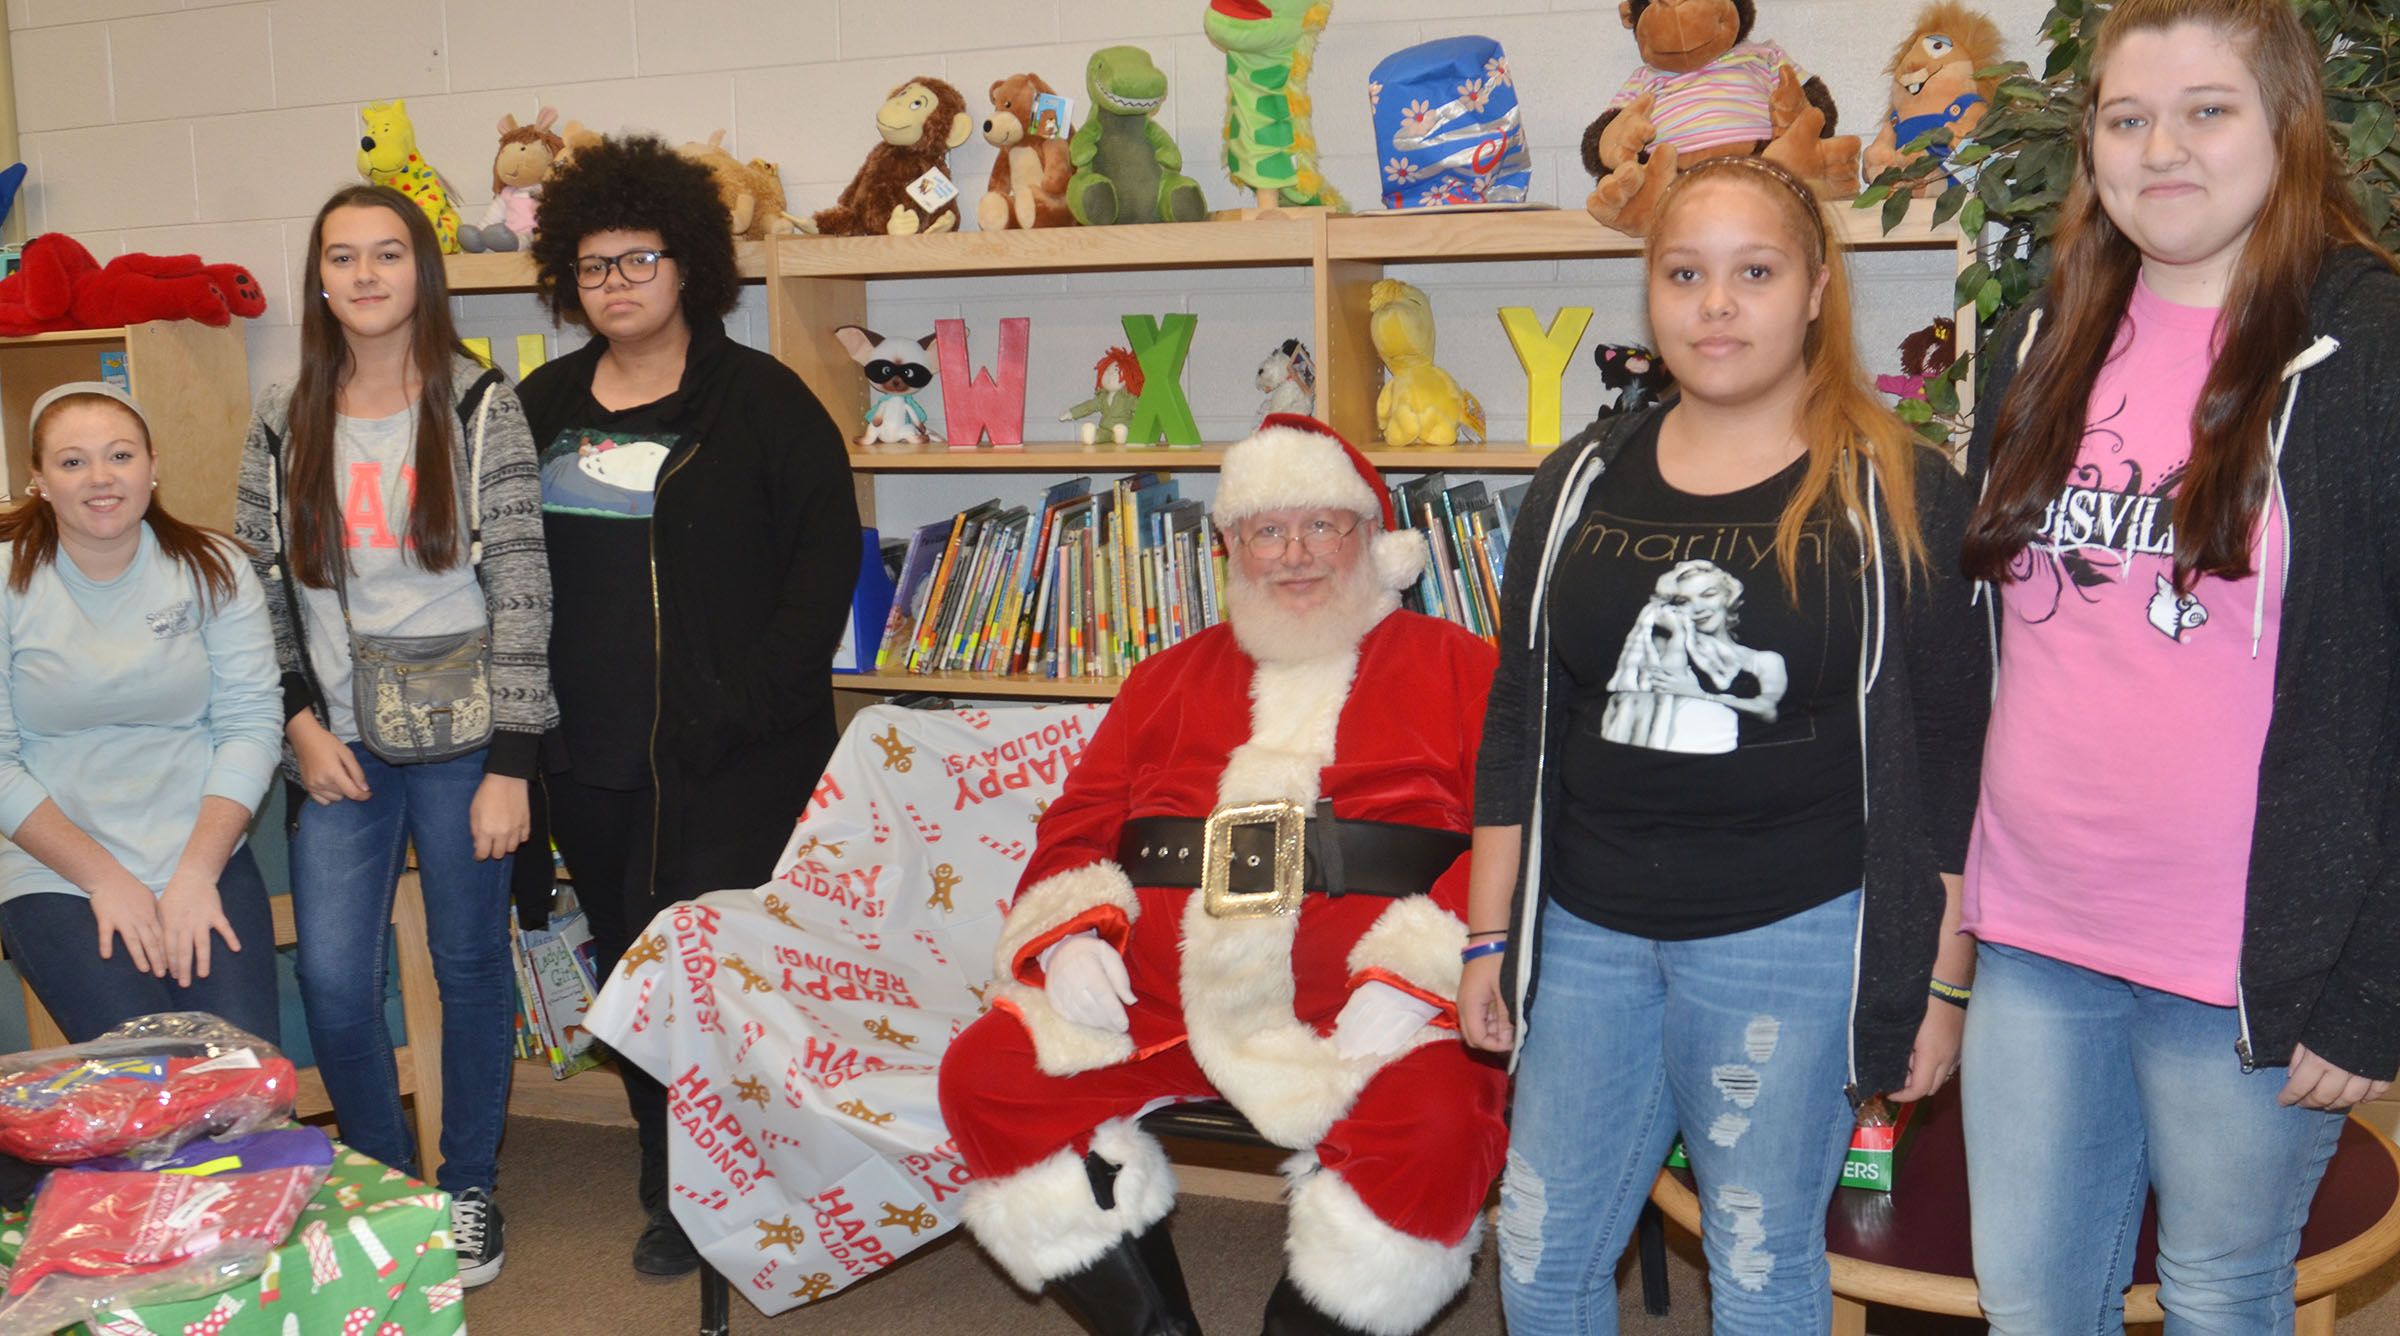 CHS FCCLA members, from left, sophomore Bethany Harris, junior Makala Antle, sophomore Jaylah Tucker and juniors Shailyn Fields and Lauren Riddle pose for a photo with Santa at a Christmas party for Campbellsville Elementary School students.